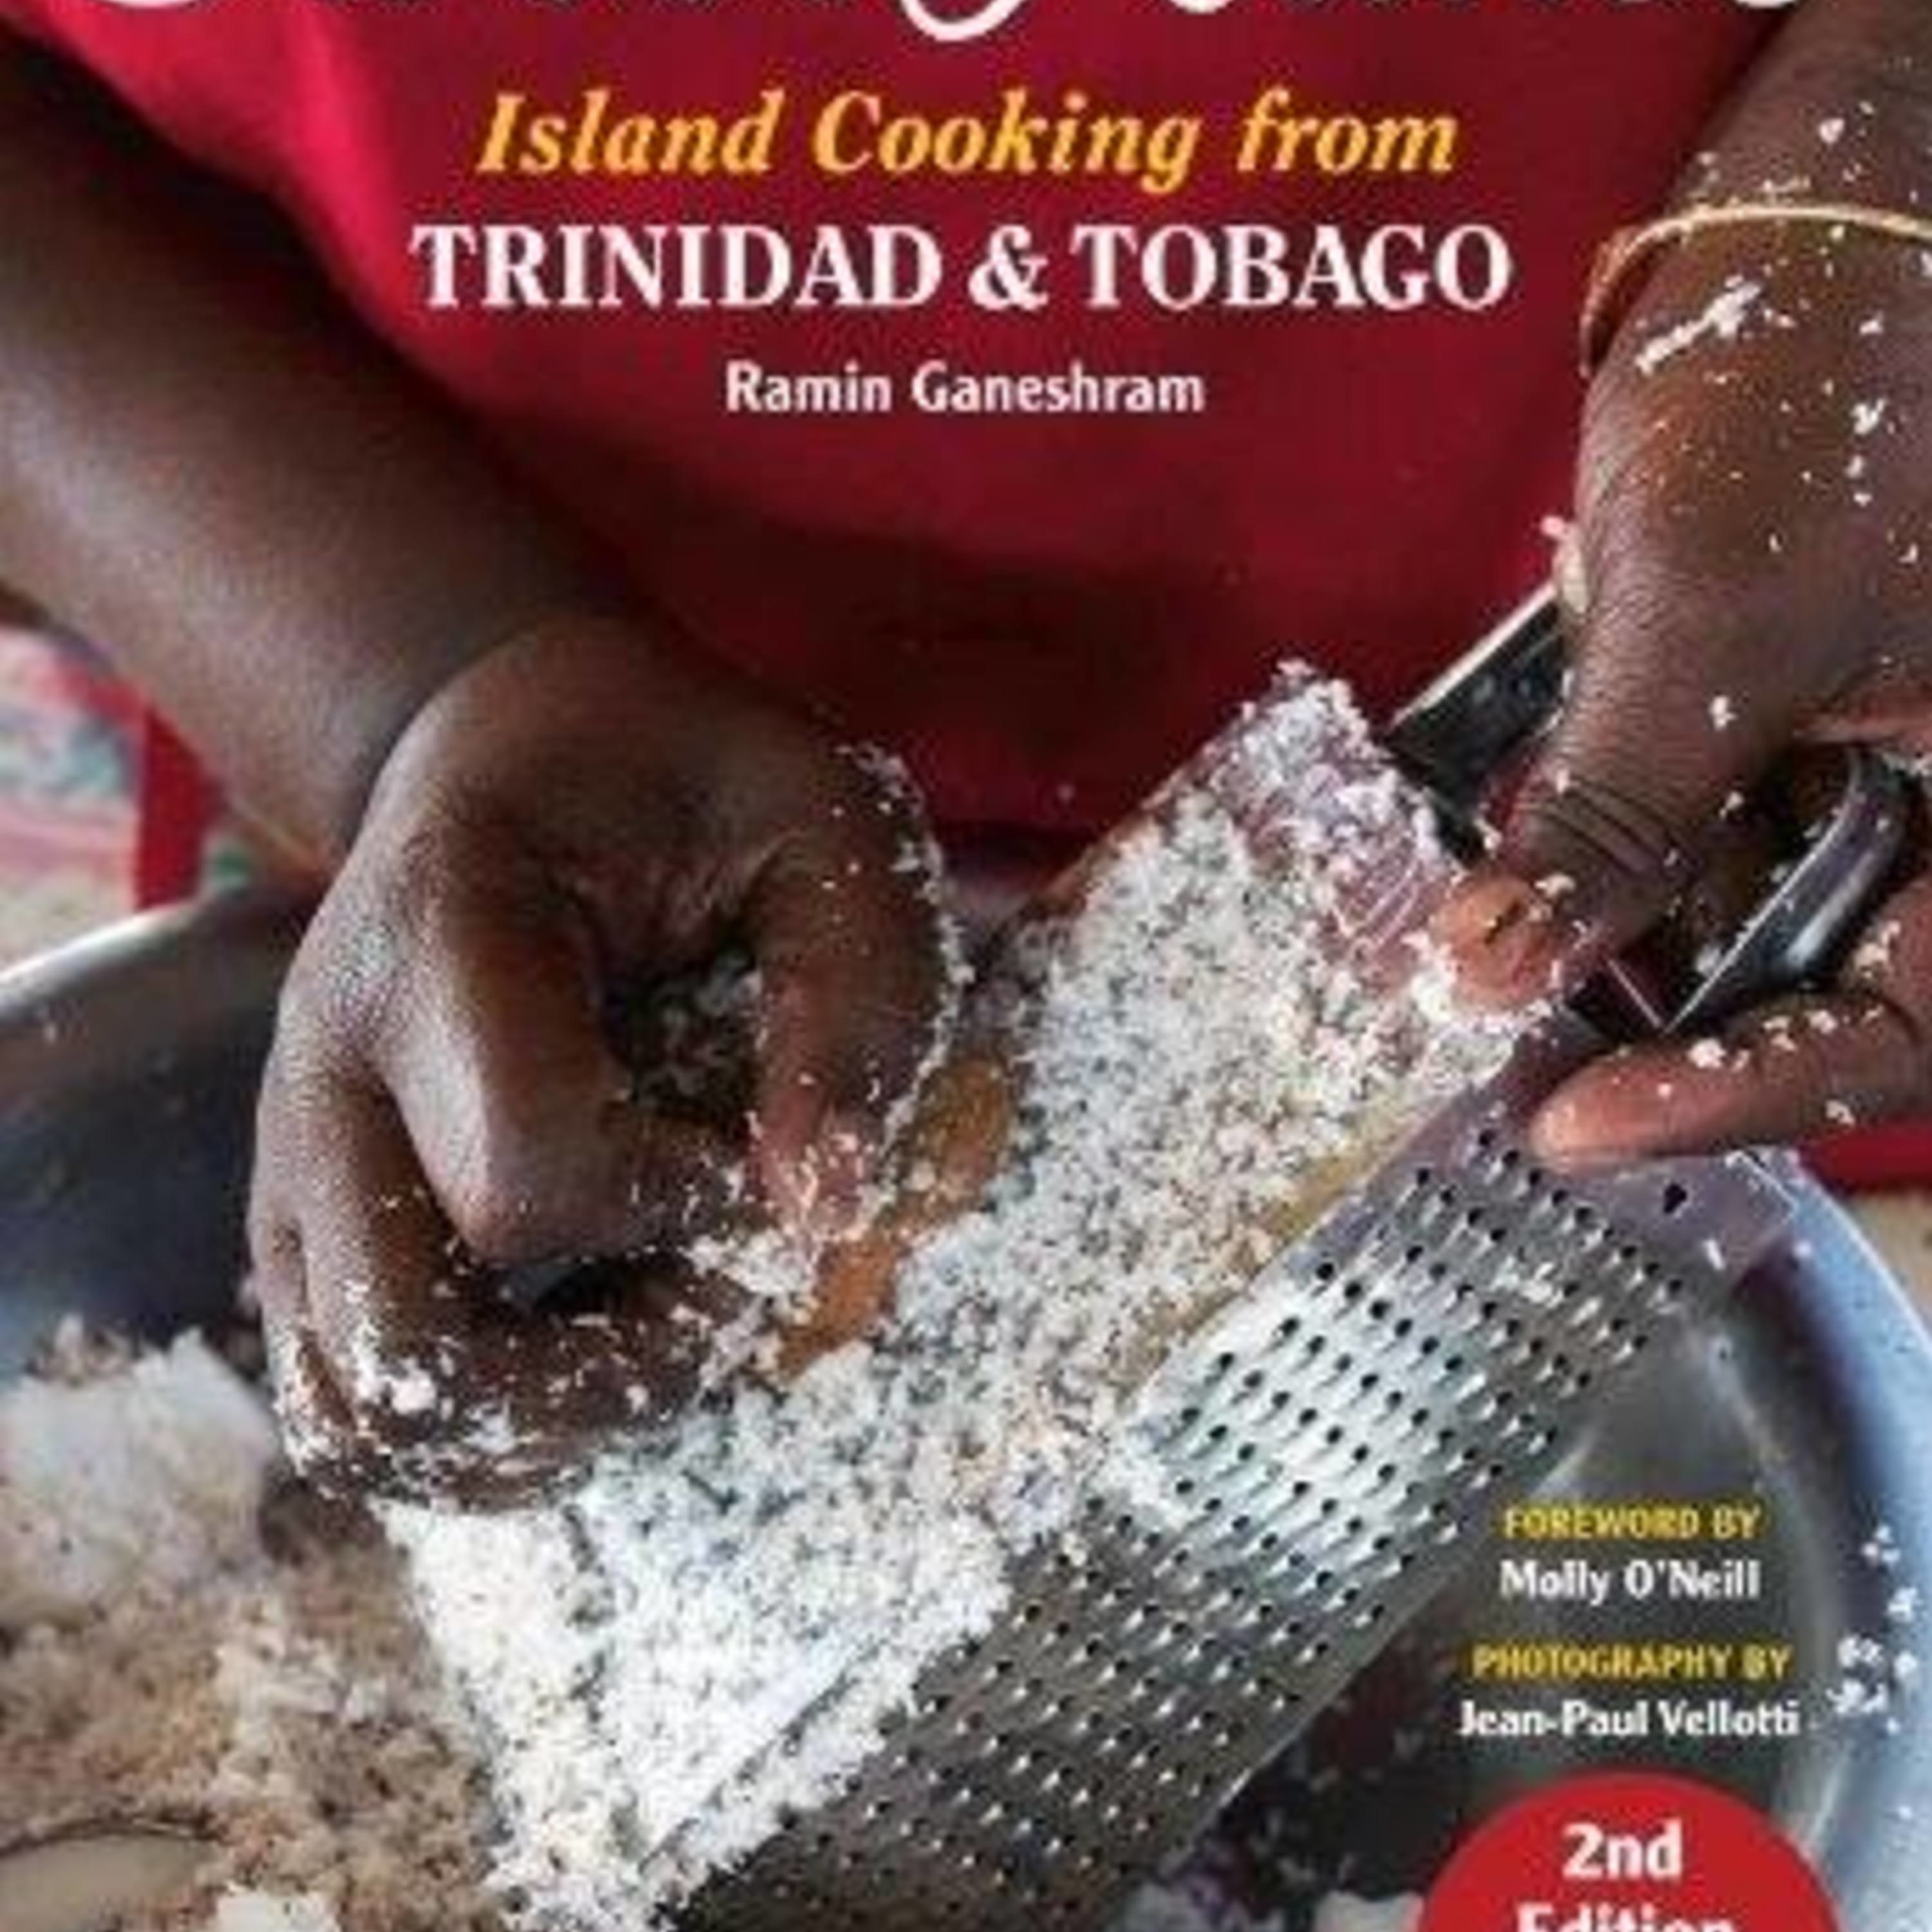 Episode 260: History and Origin of Coconuts and Their Use in Cooking